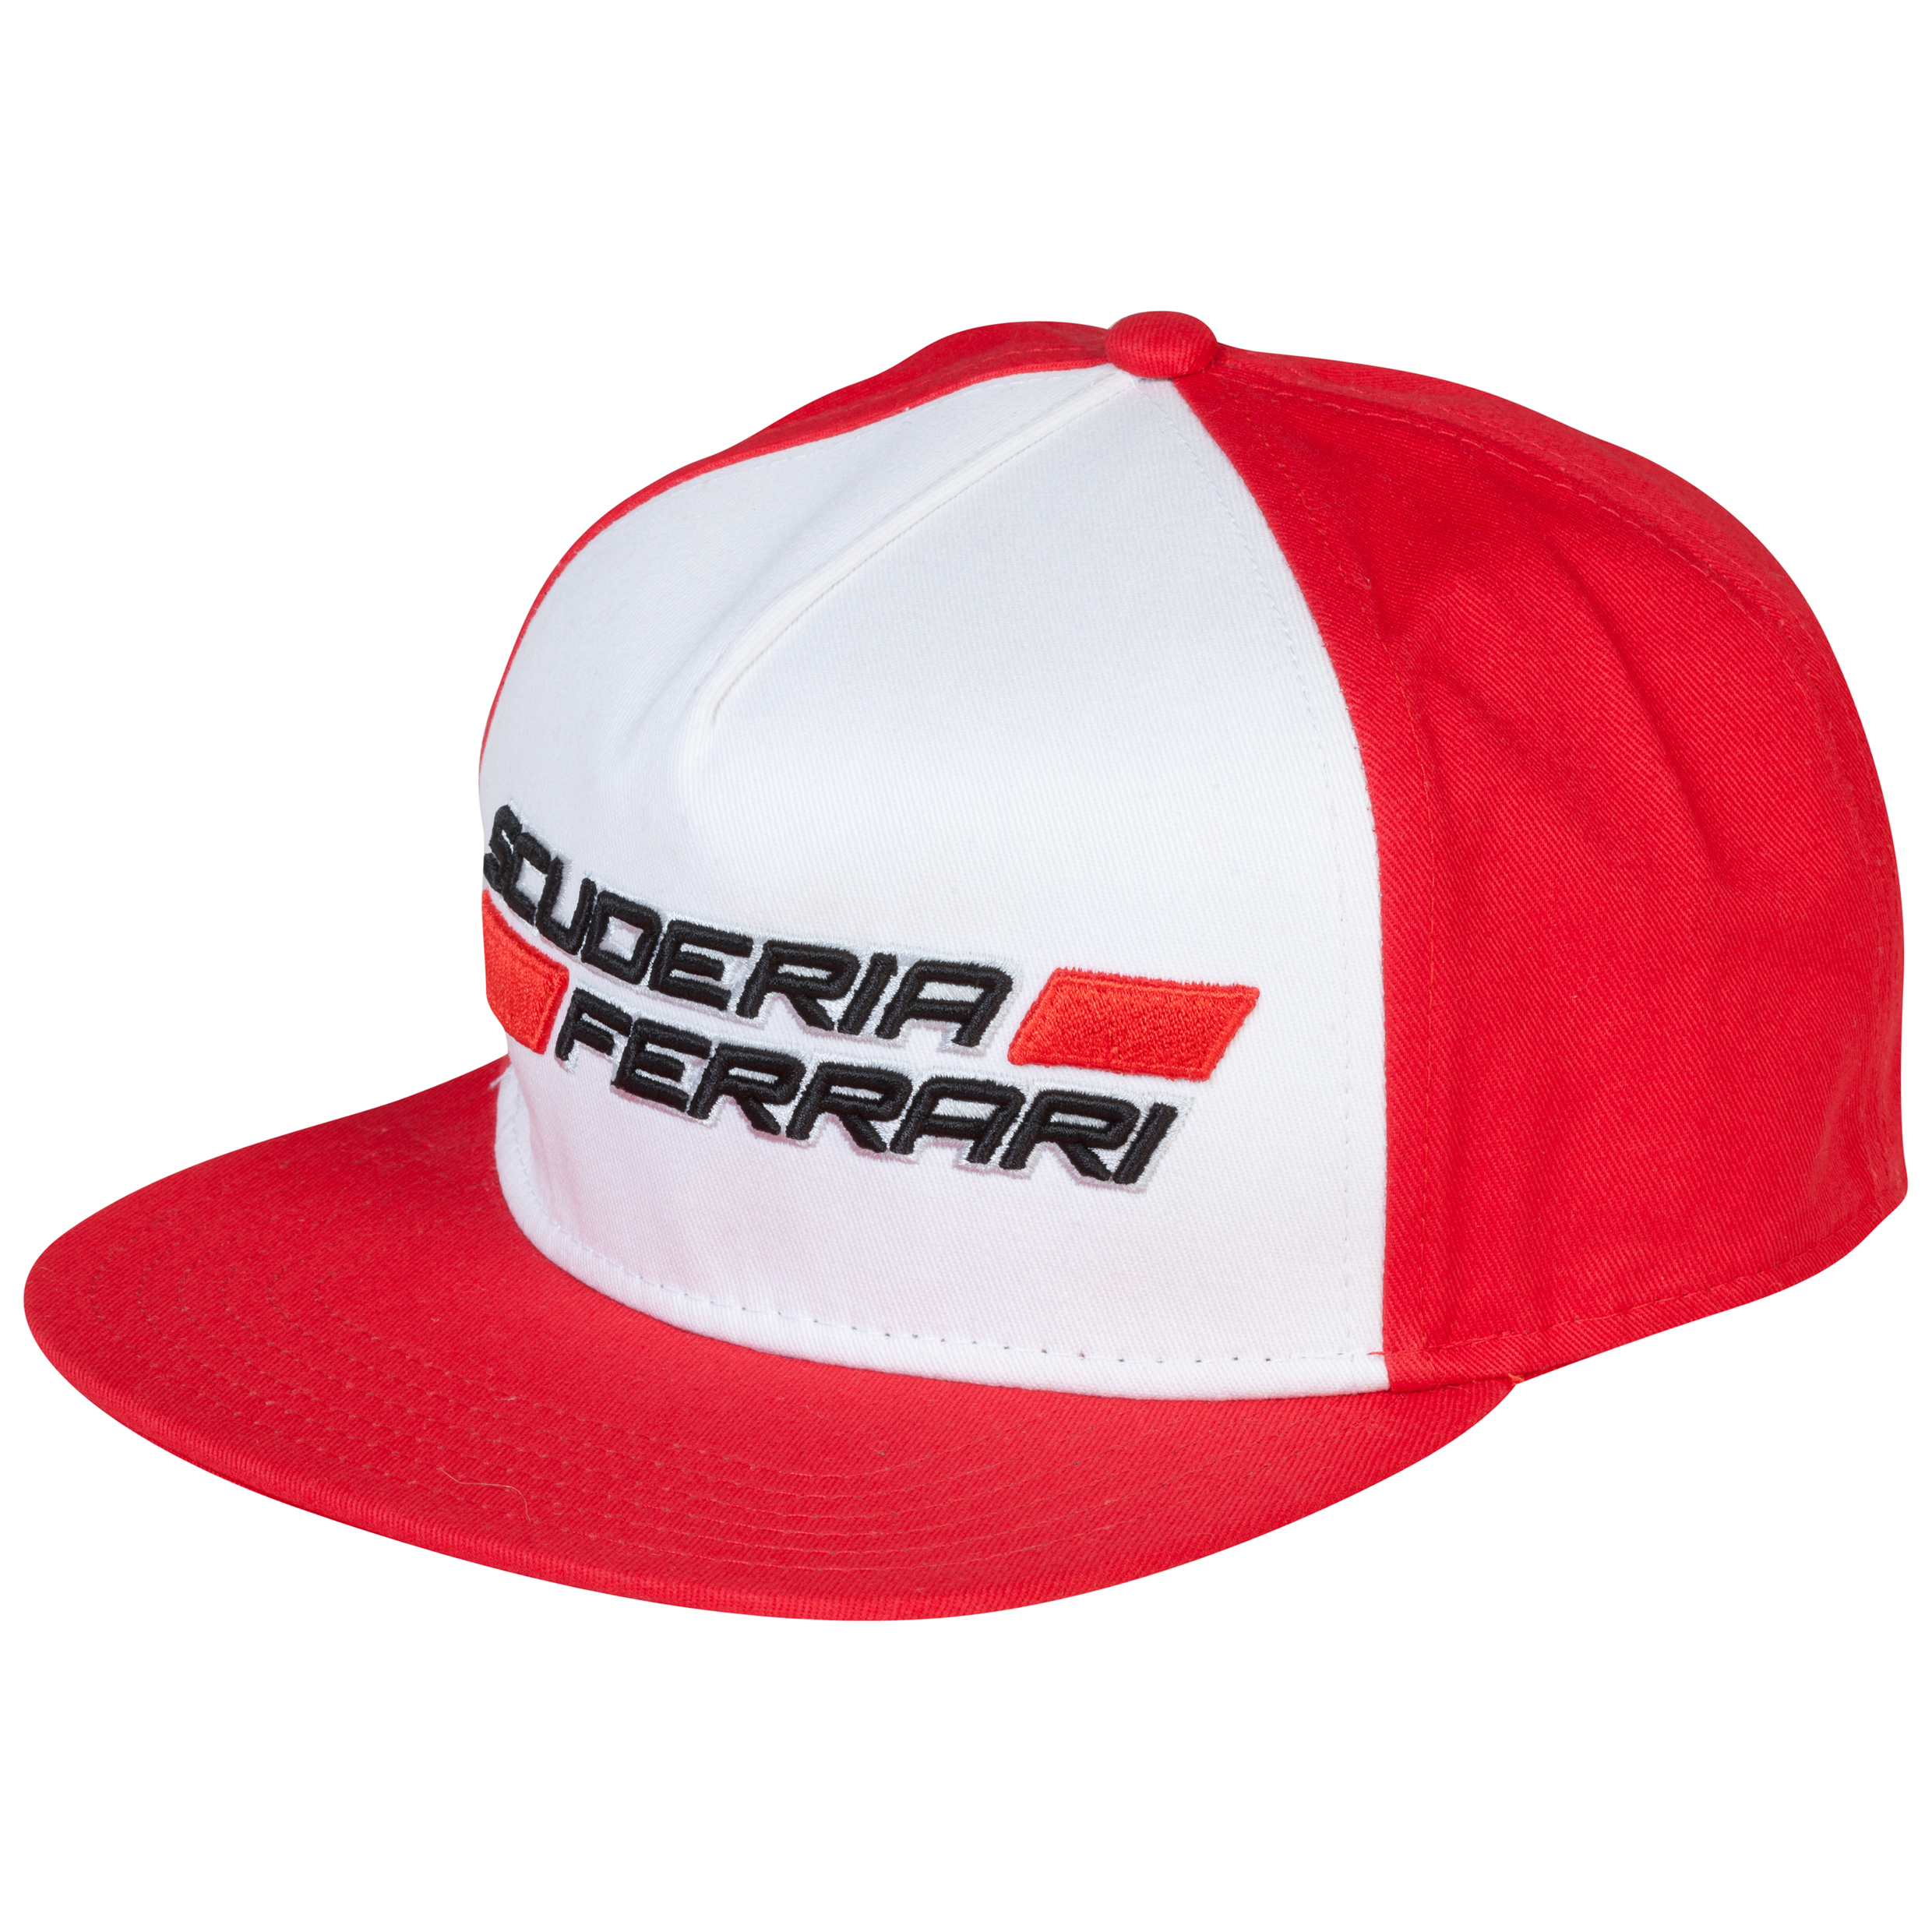 Scuderia Ferrari Scuderia Old School Cap - Red